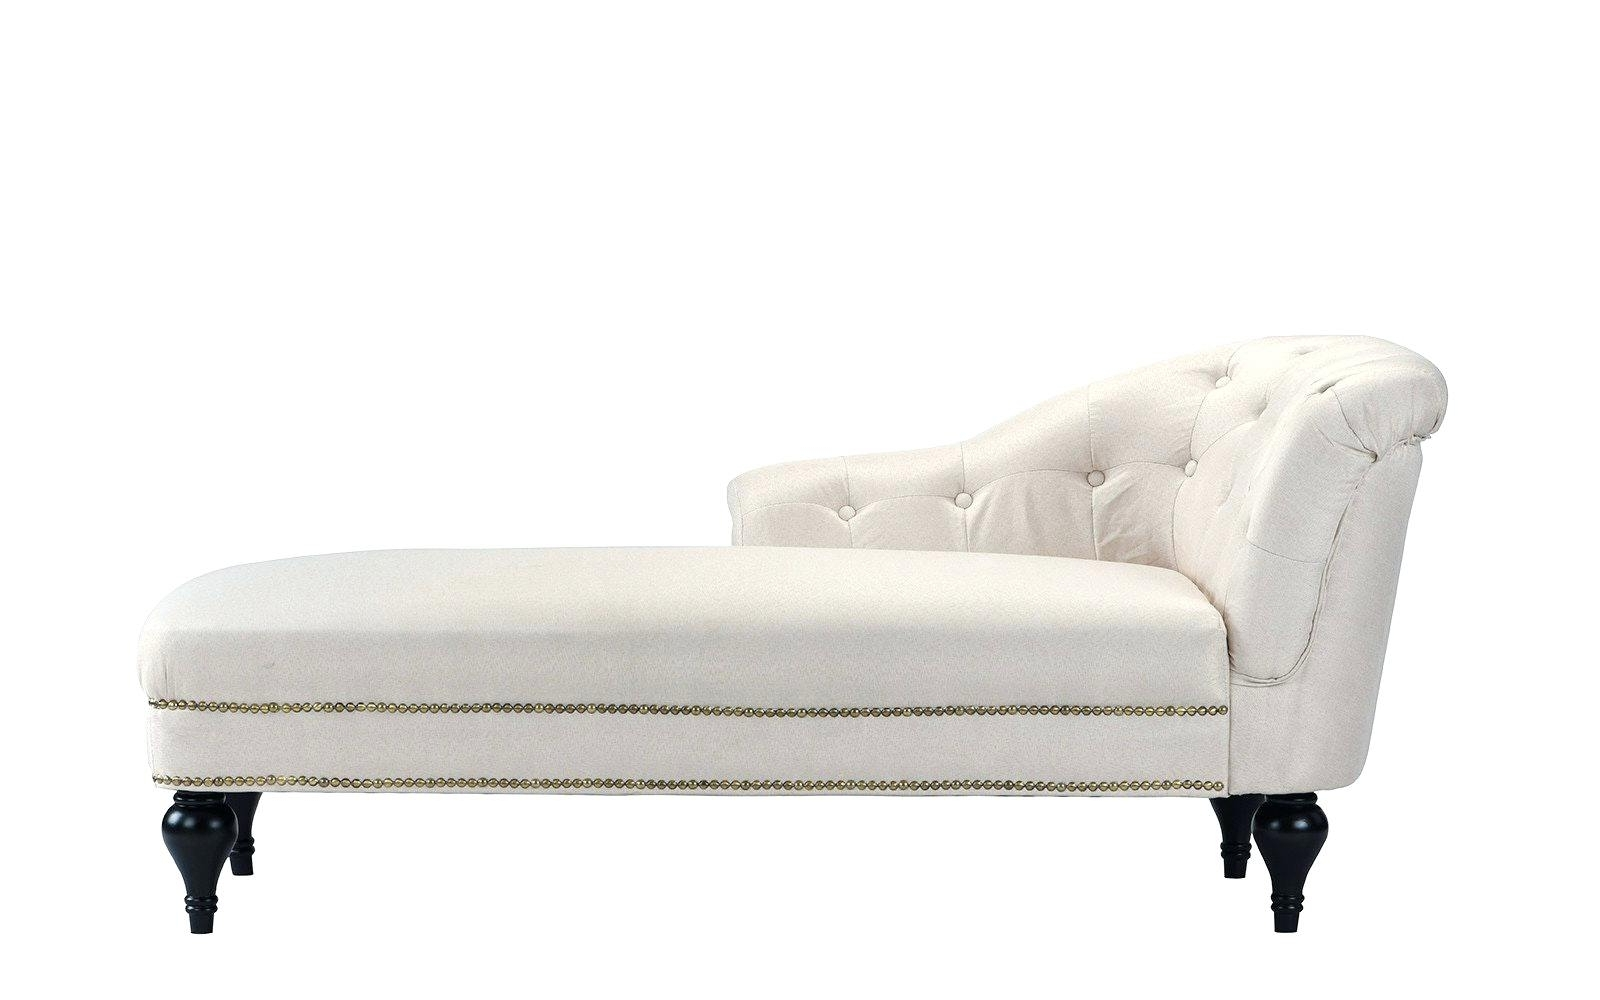 Alessia Chaise Lounge Tufted Chairs With Best And Newest Alessia Chaise Lounge Chair Tufted • Lounge Chairs Ideas (View 2 of 15)